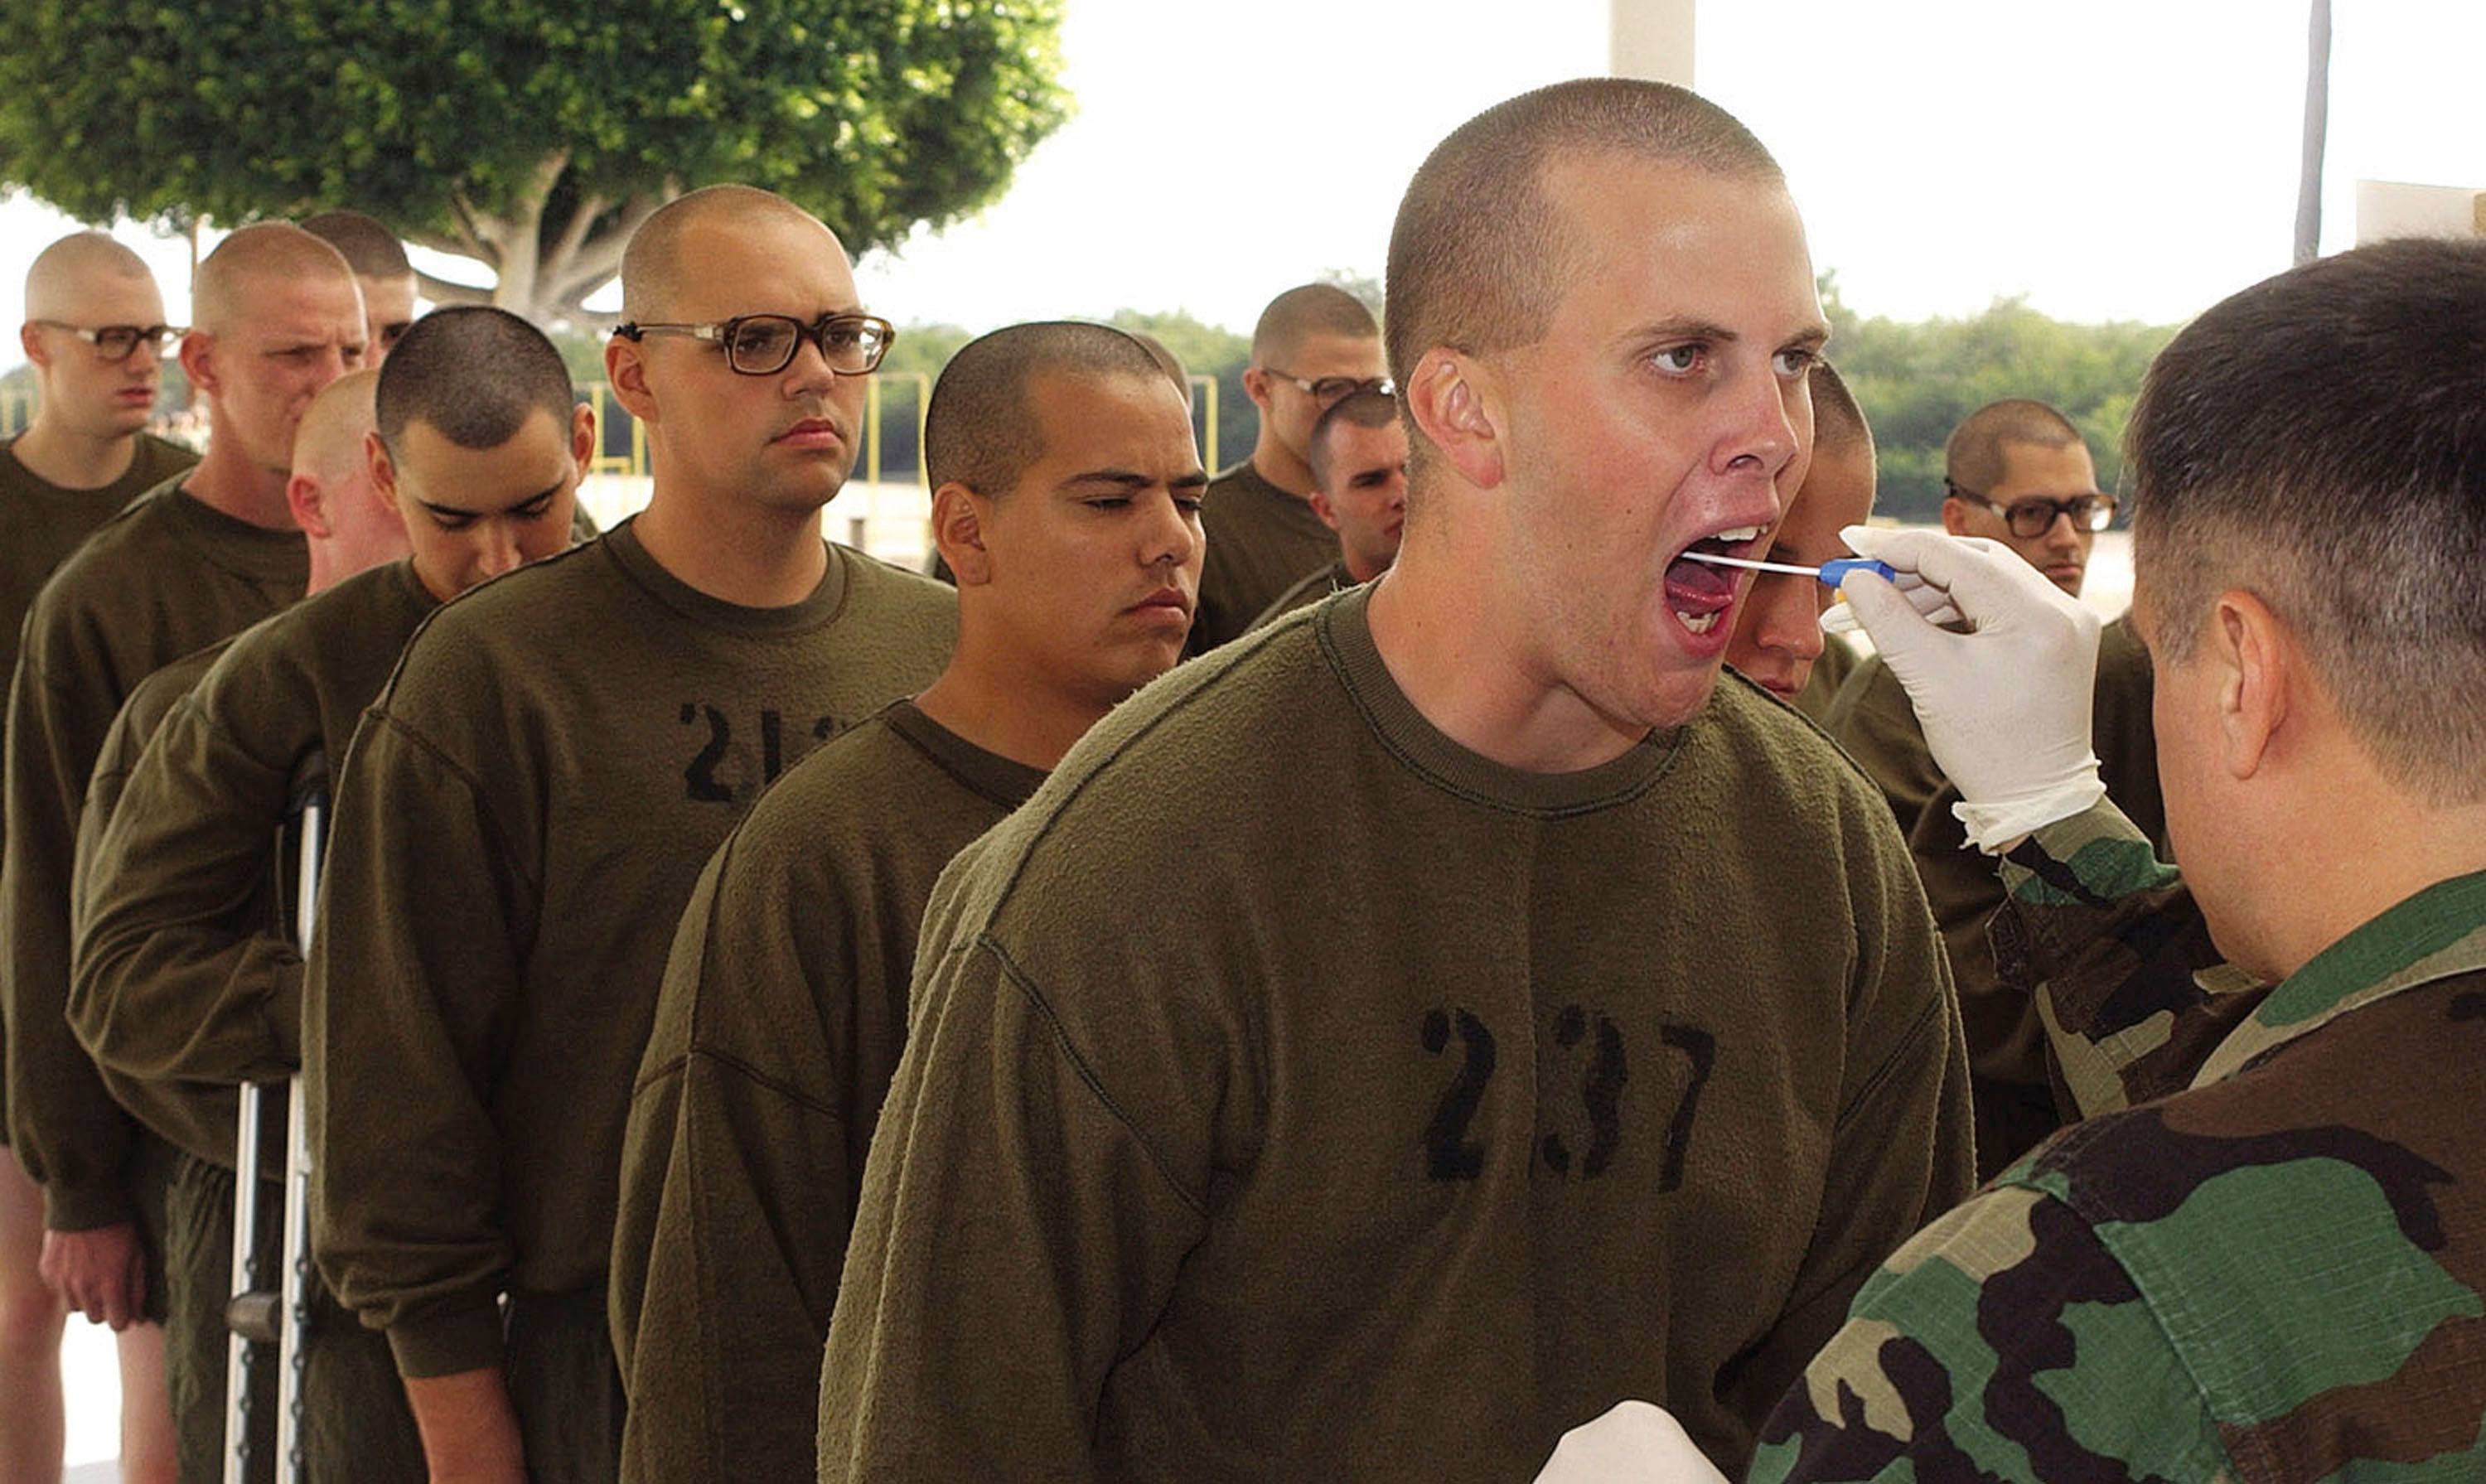 Recruits get a throat swabbing